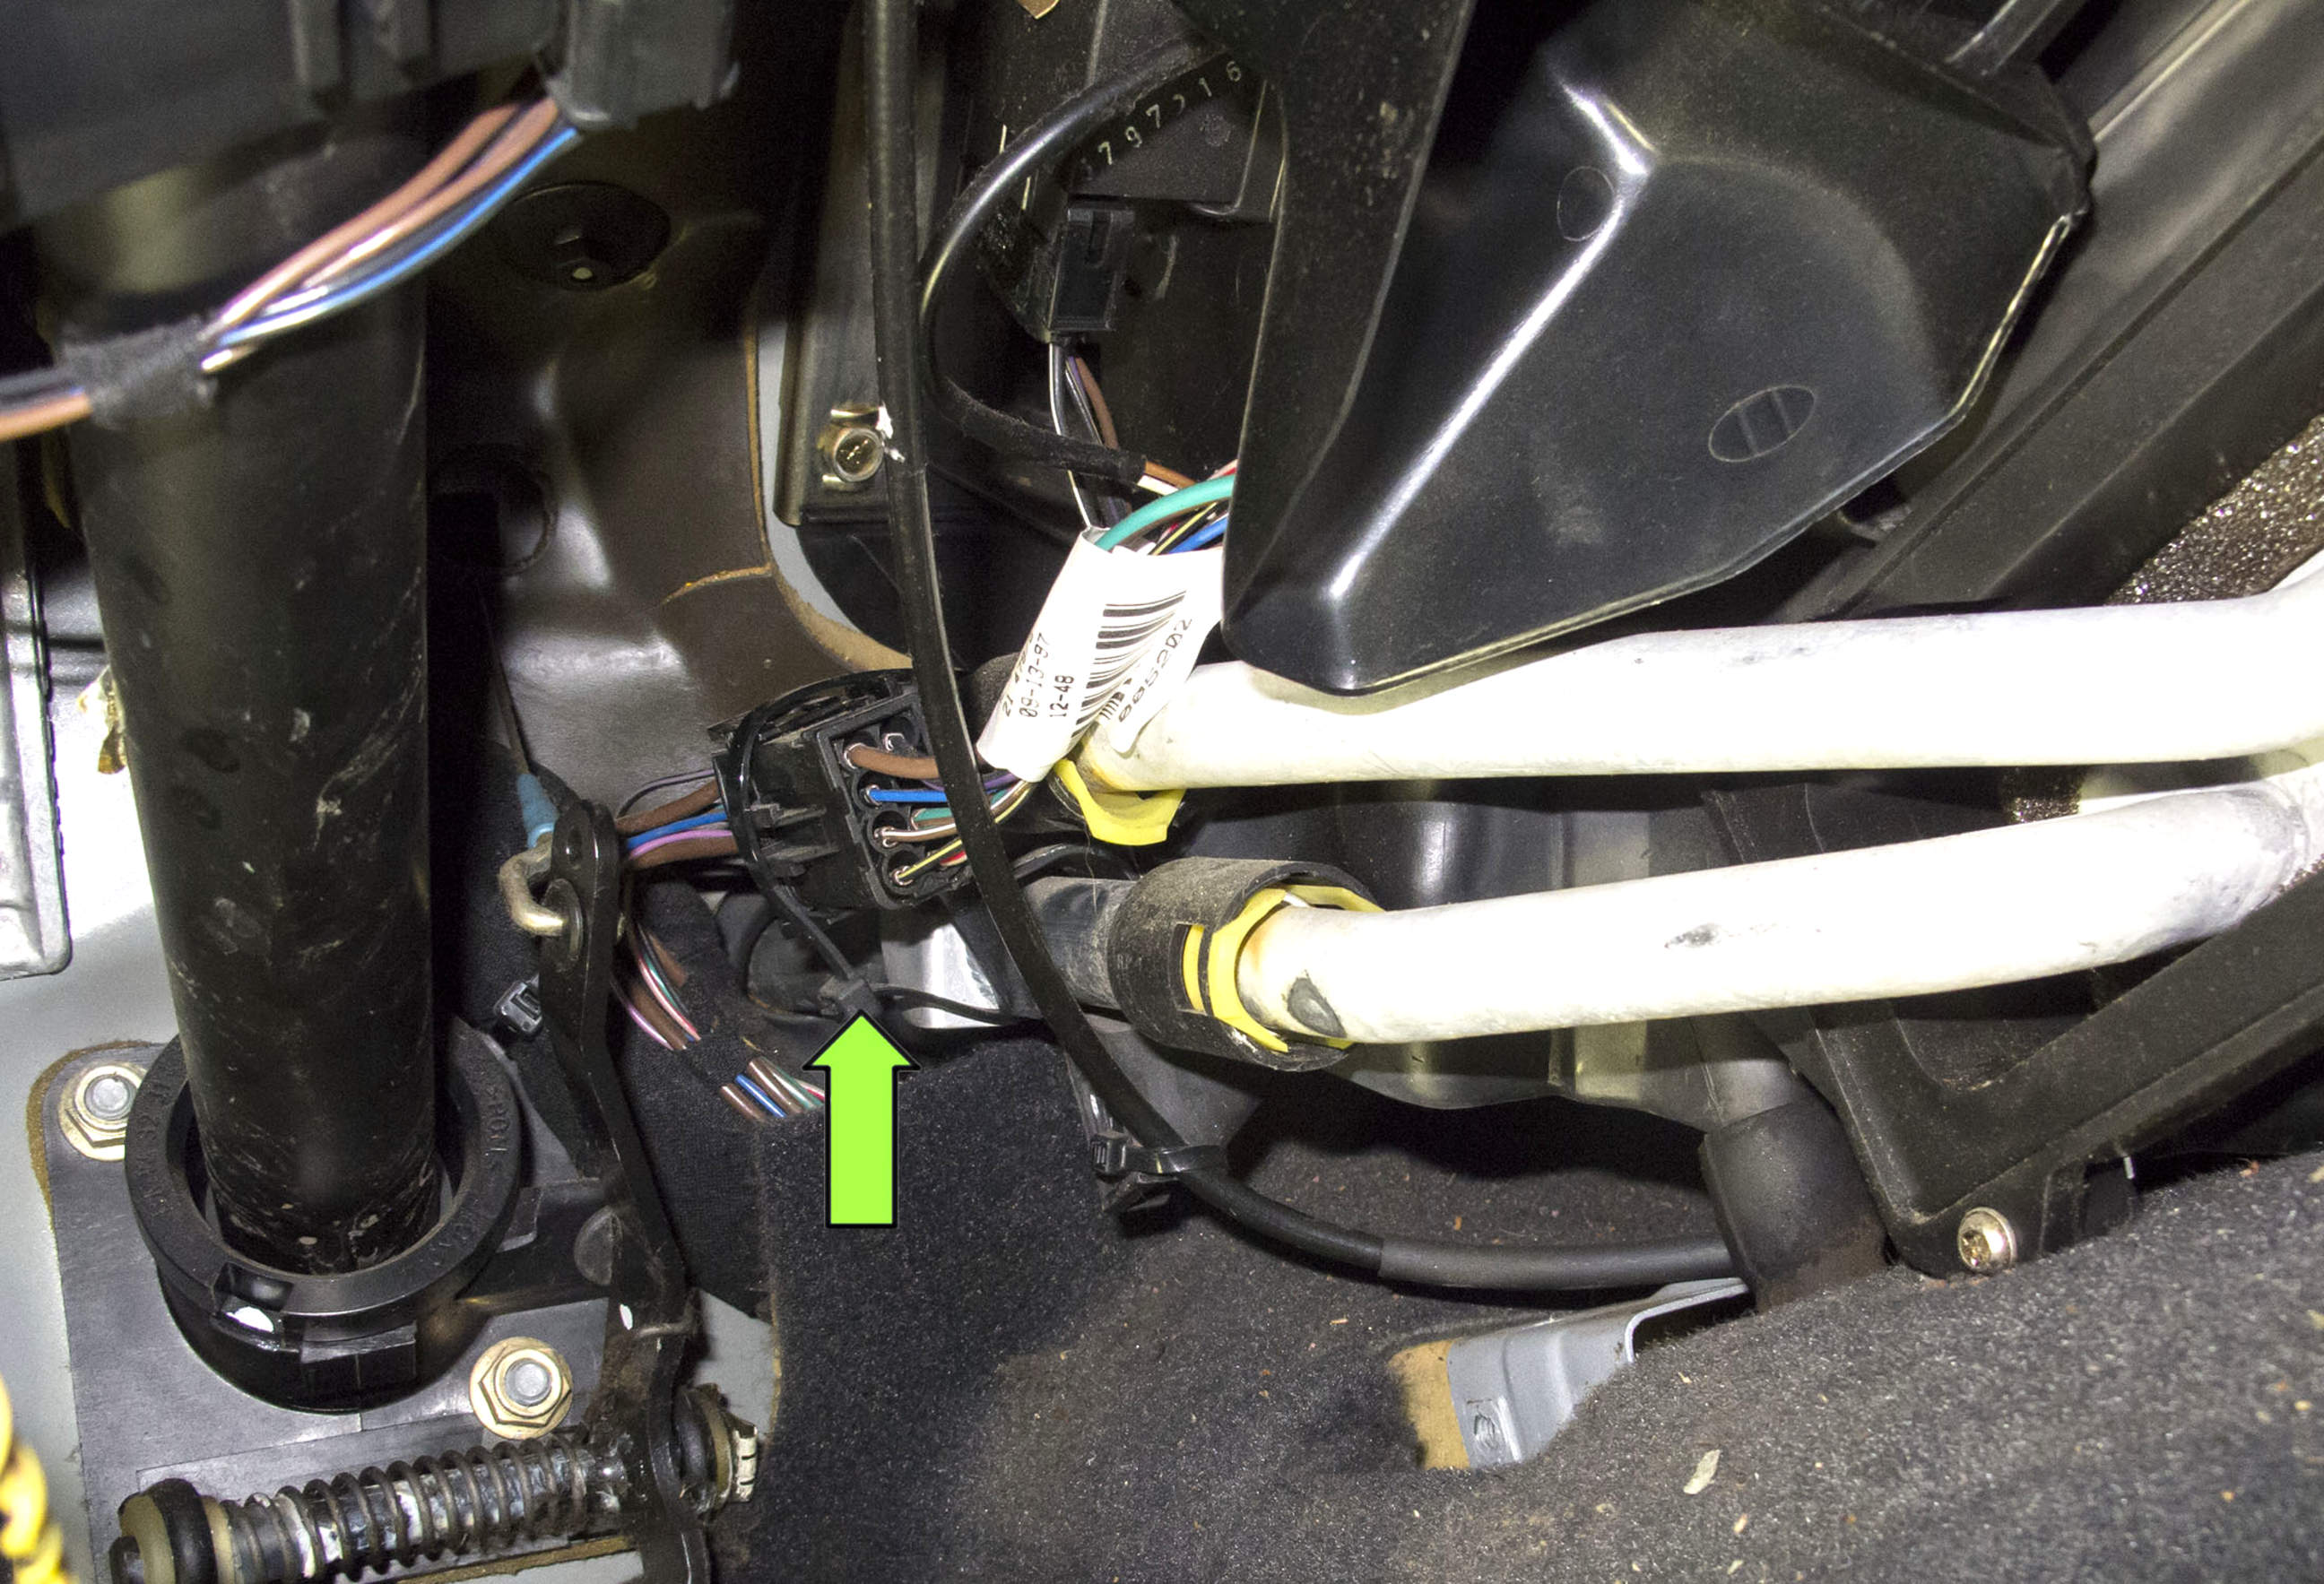 Hqdefault besides Maxresdefault in addition  likewise  as well B F Fb. on 1999 cadillac deville heater core replacement